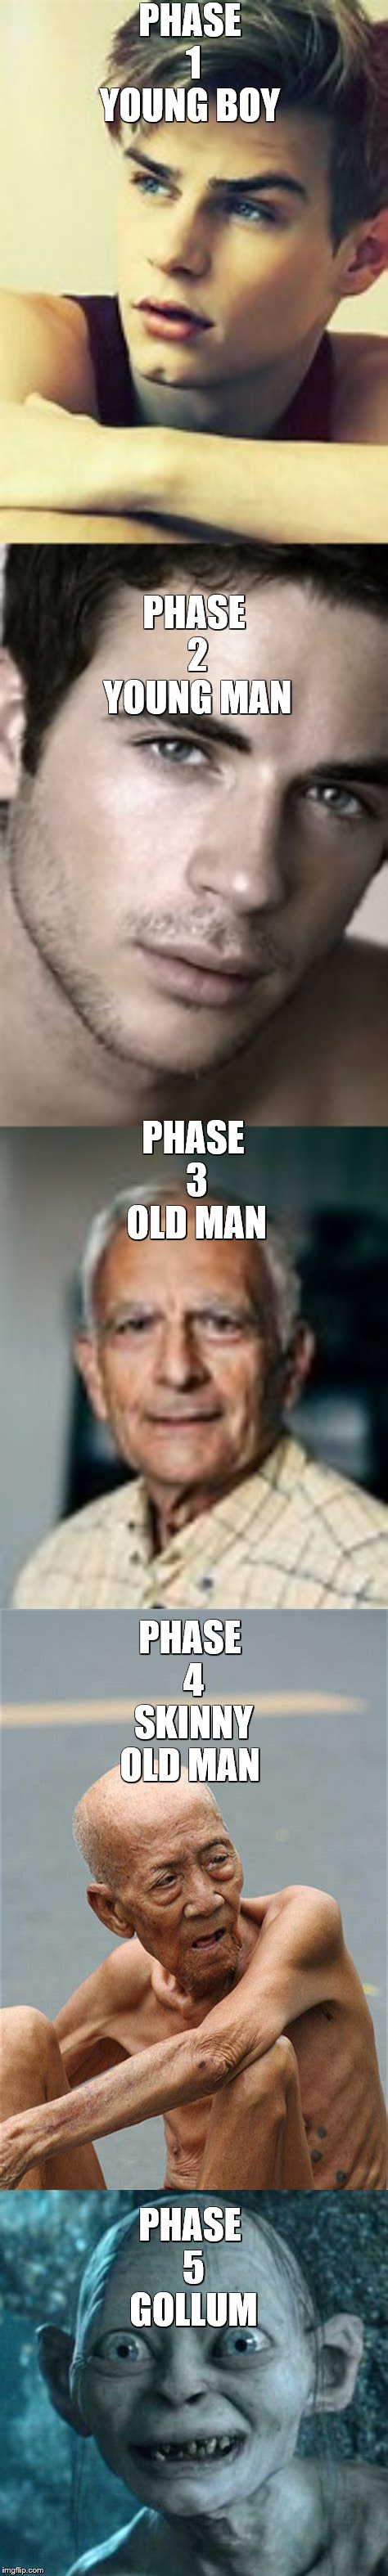 The 5 Stages of Life Then You Turn Into This | PHASE 1 YOUNG BOY PHASE 5 GOLLUM PHASE 2 YOUNG MAN PHASE 3 OLD MAN PHASE 4 SKINNY OLD MAN | image tagged in memes,gollum,before and after,a series of unfortunate events | made w/ Imgflip meme maker